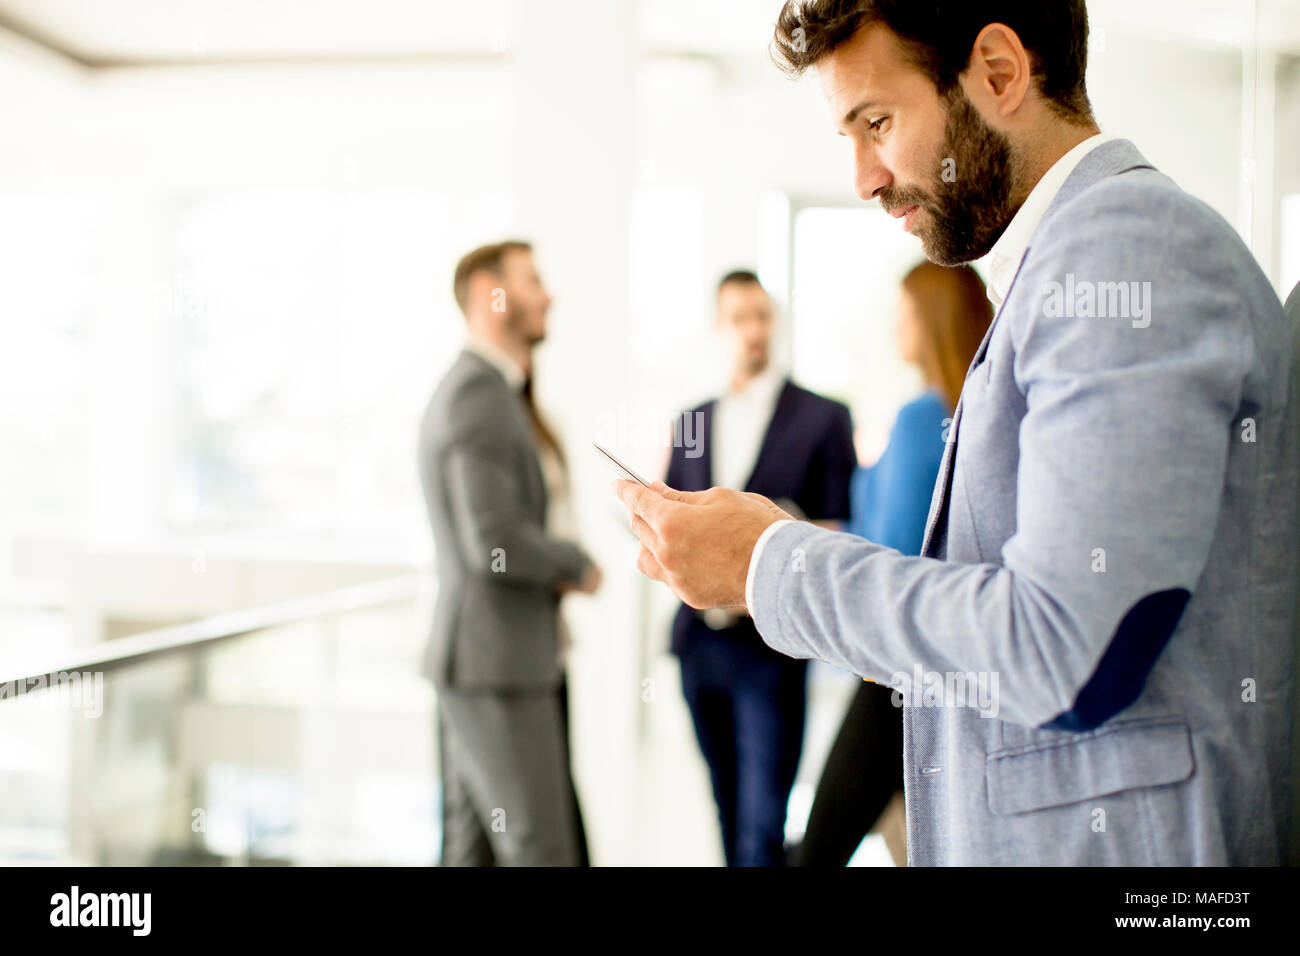 Handsome young businessman using mobile phone in office Photo Stock